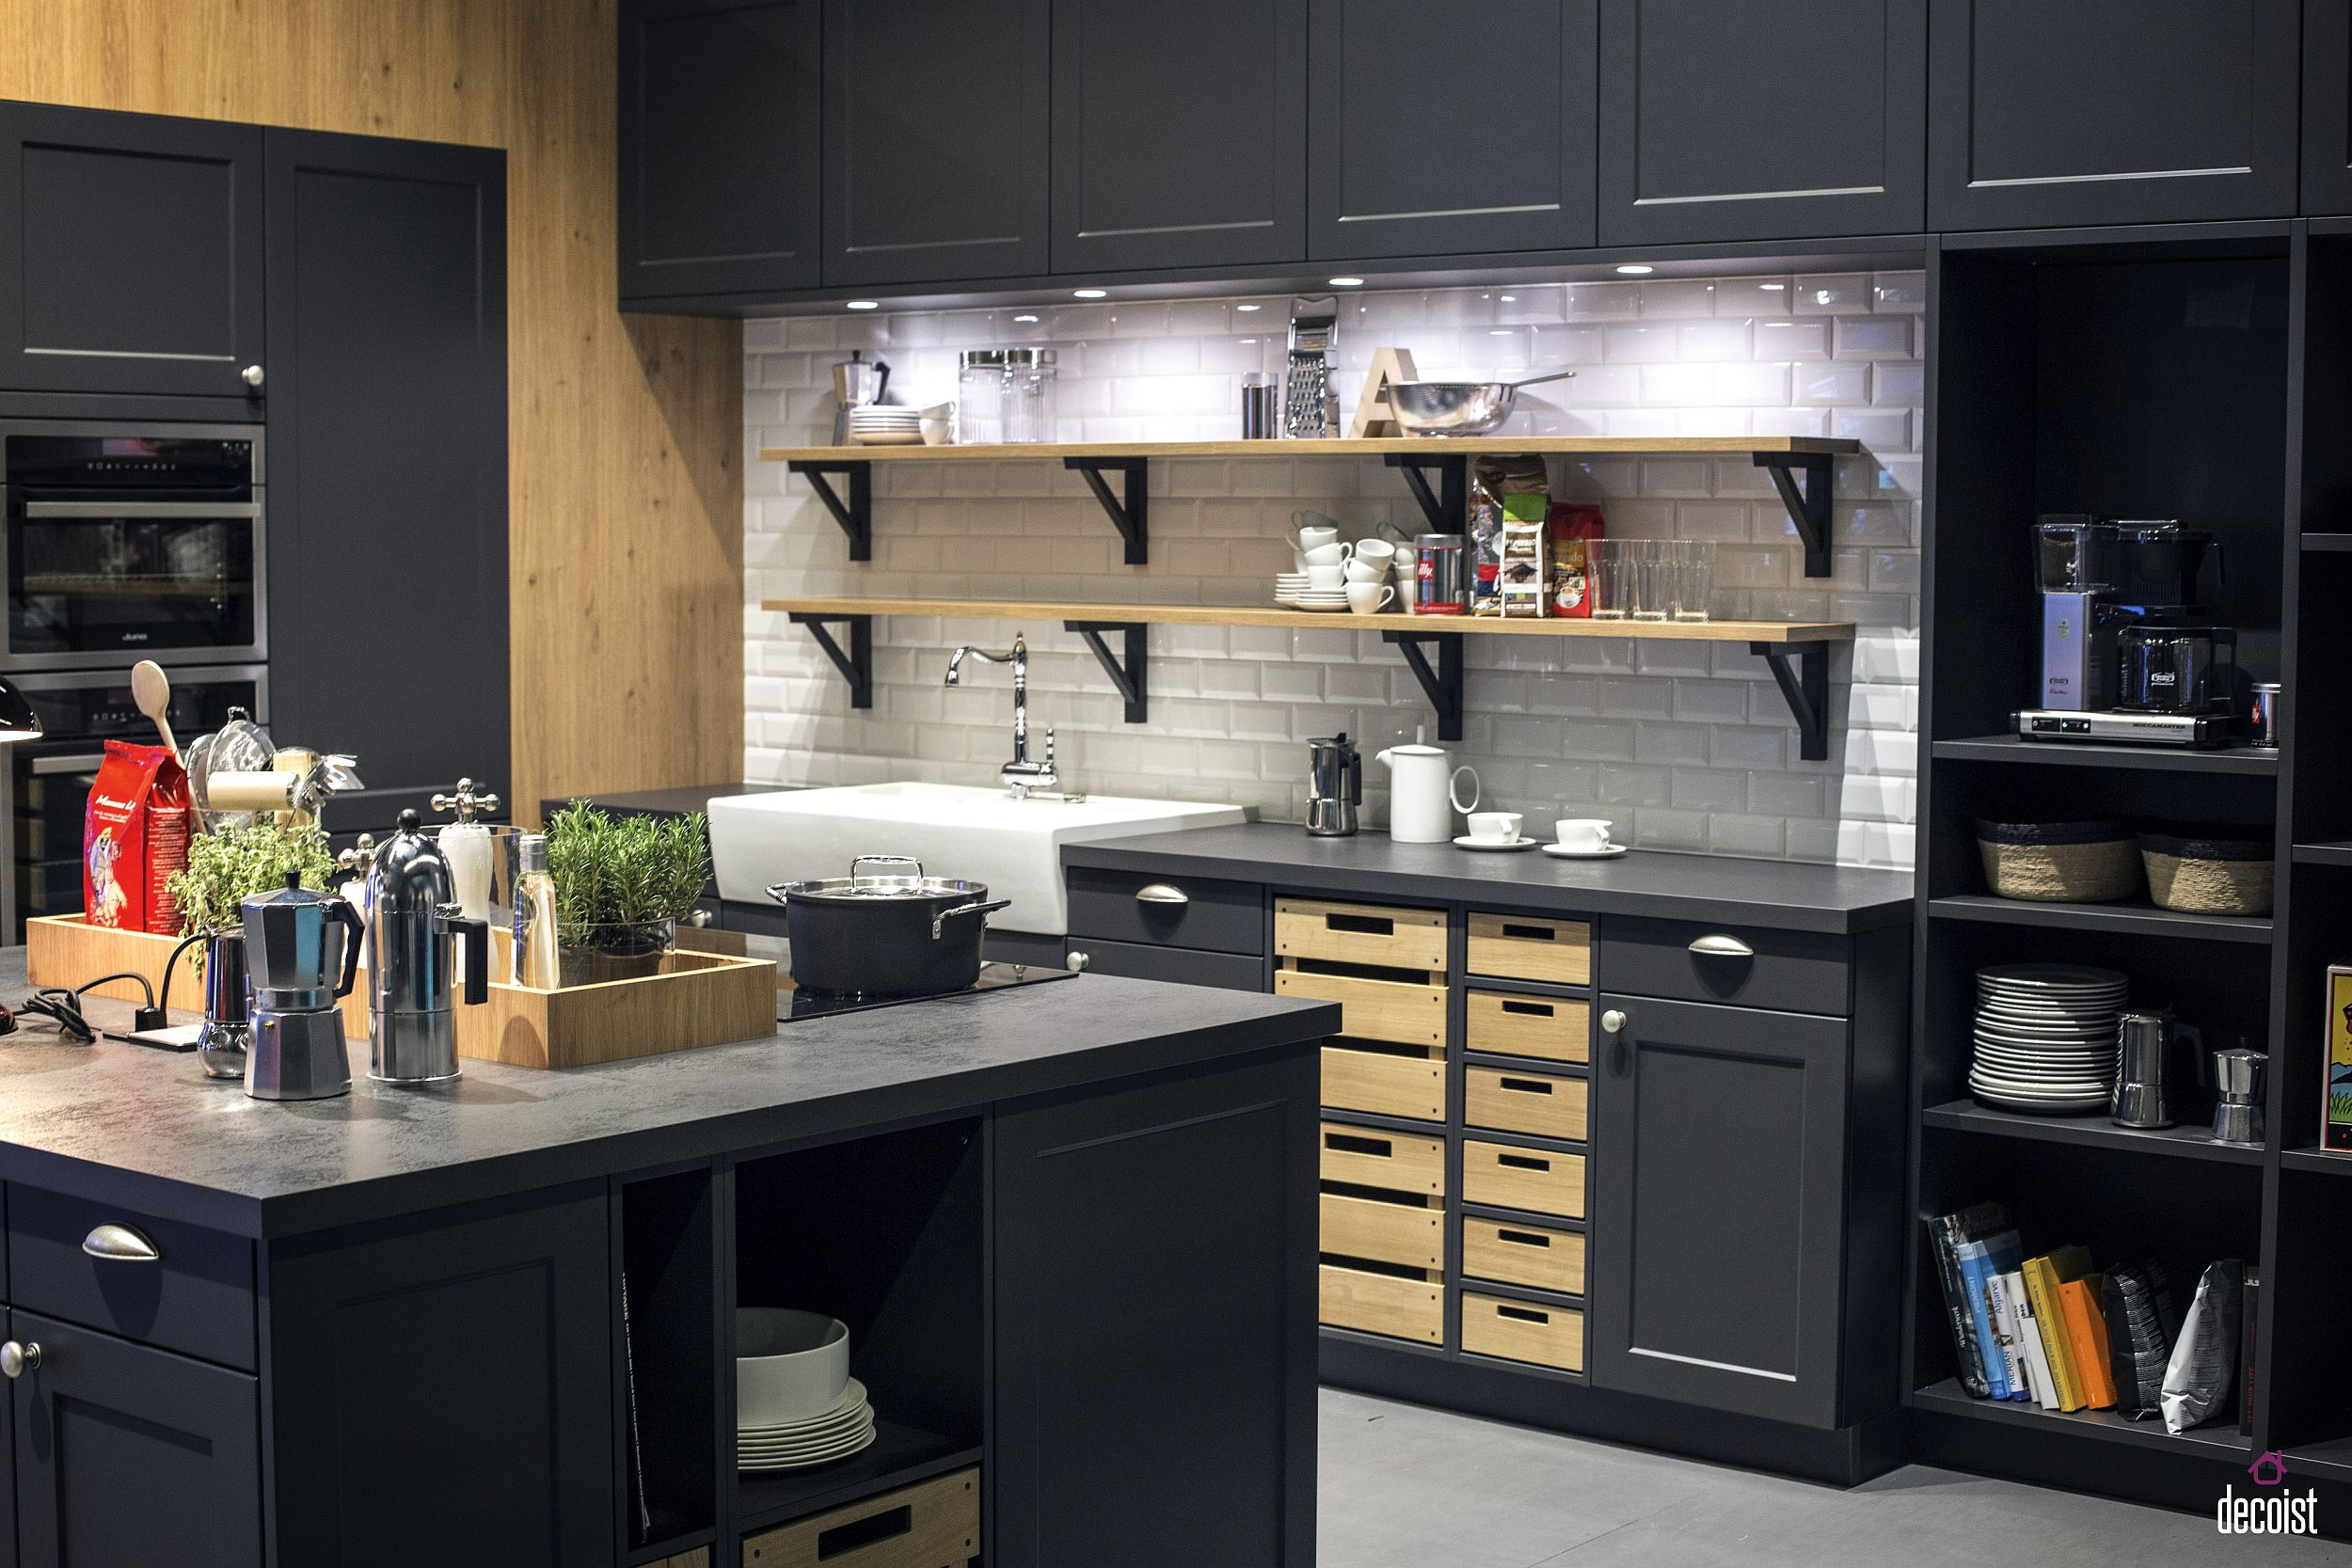 Practical and Trendy 40 Open Shelving Ideas for the